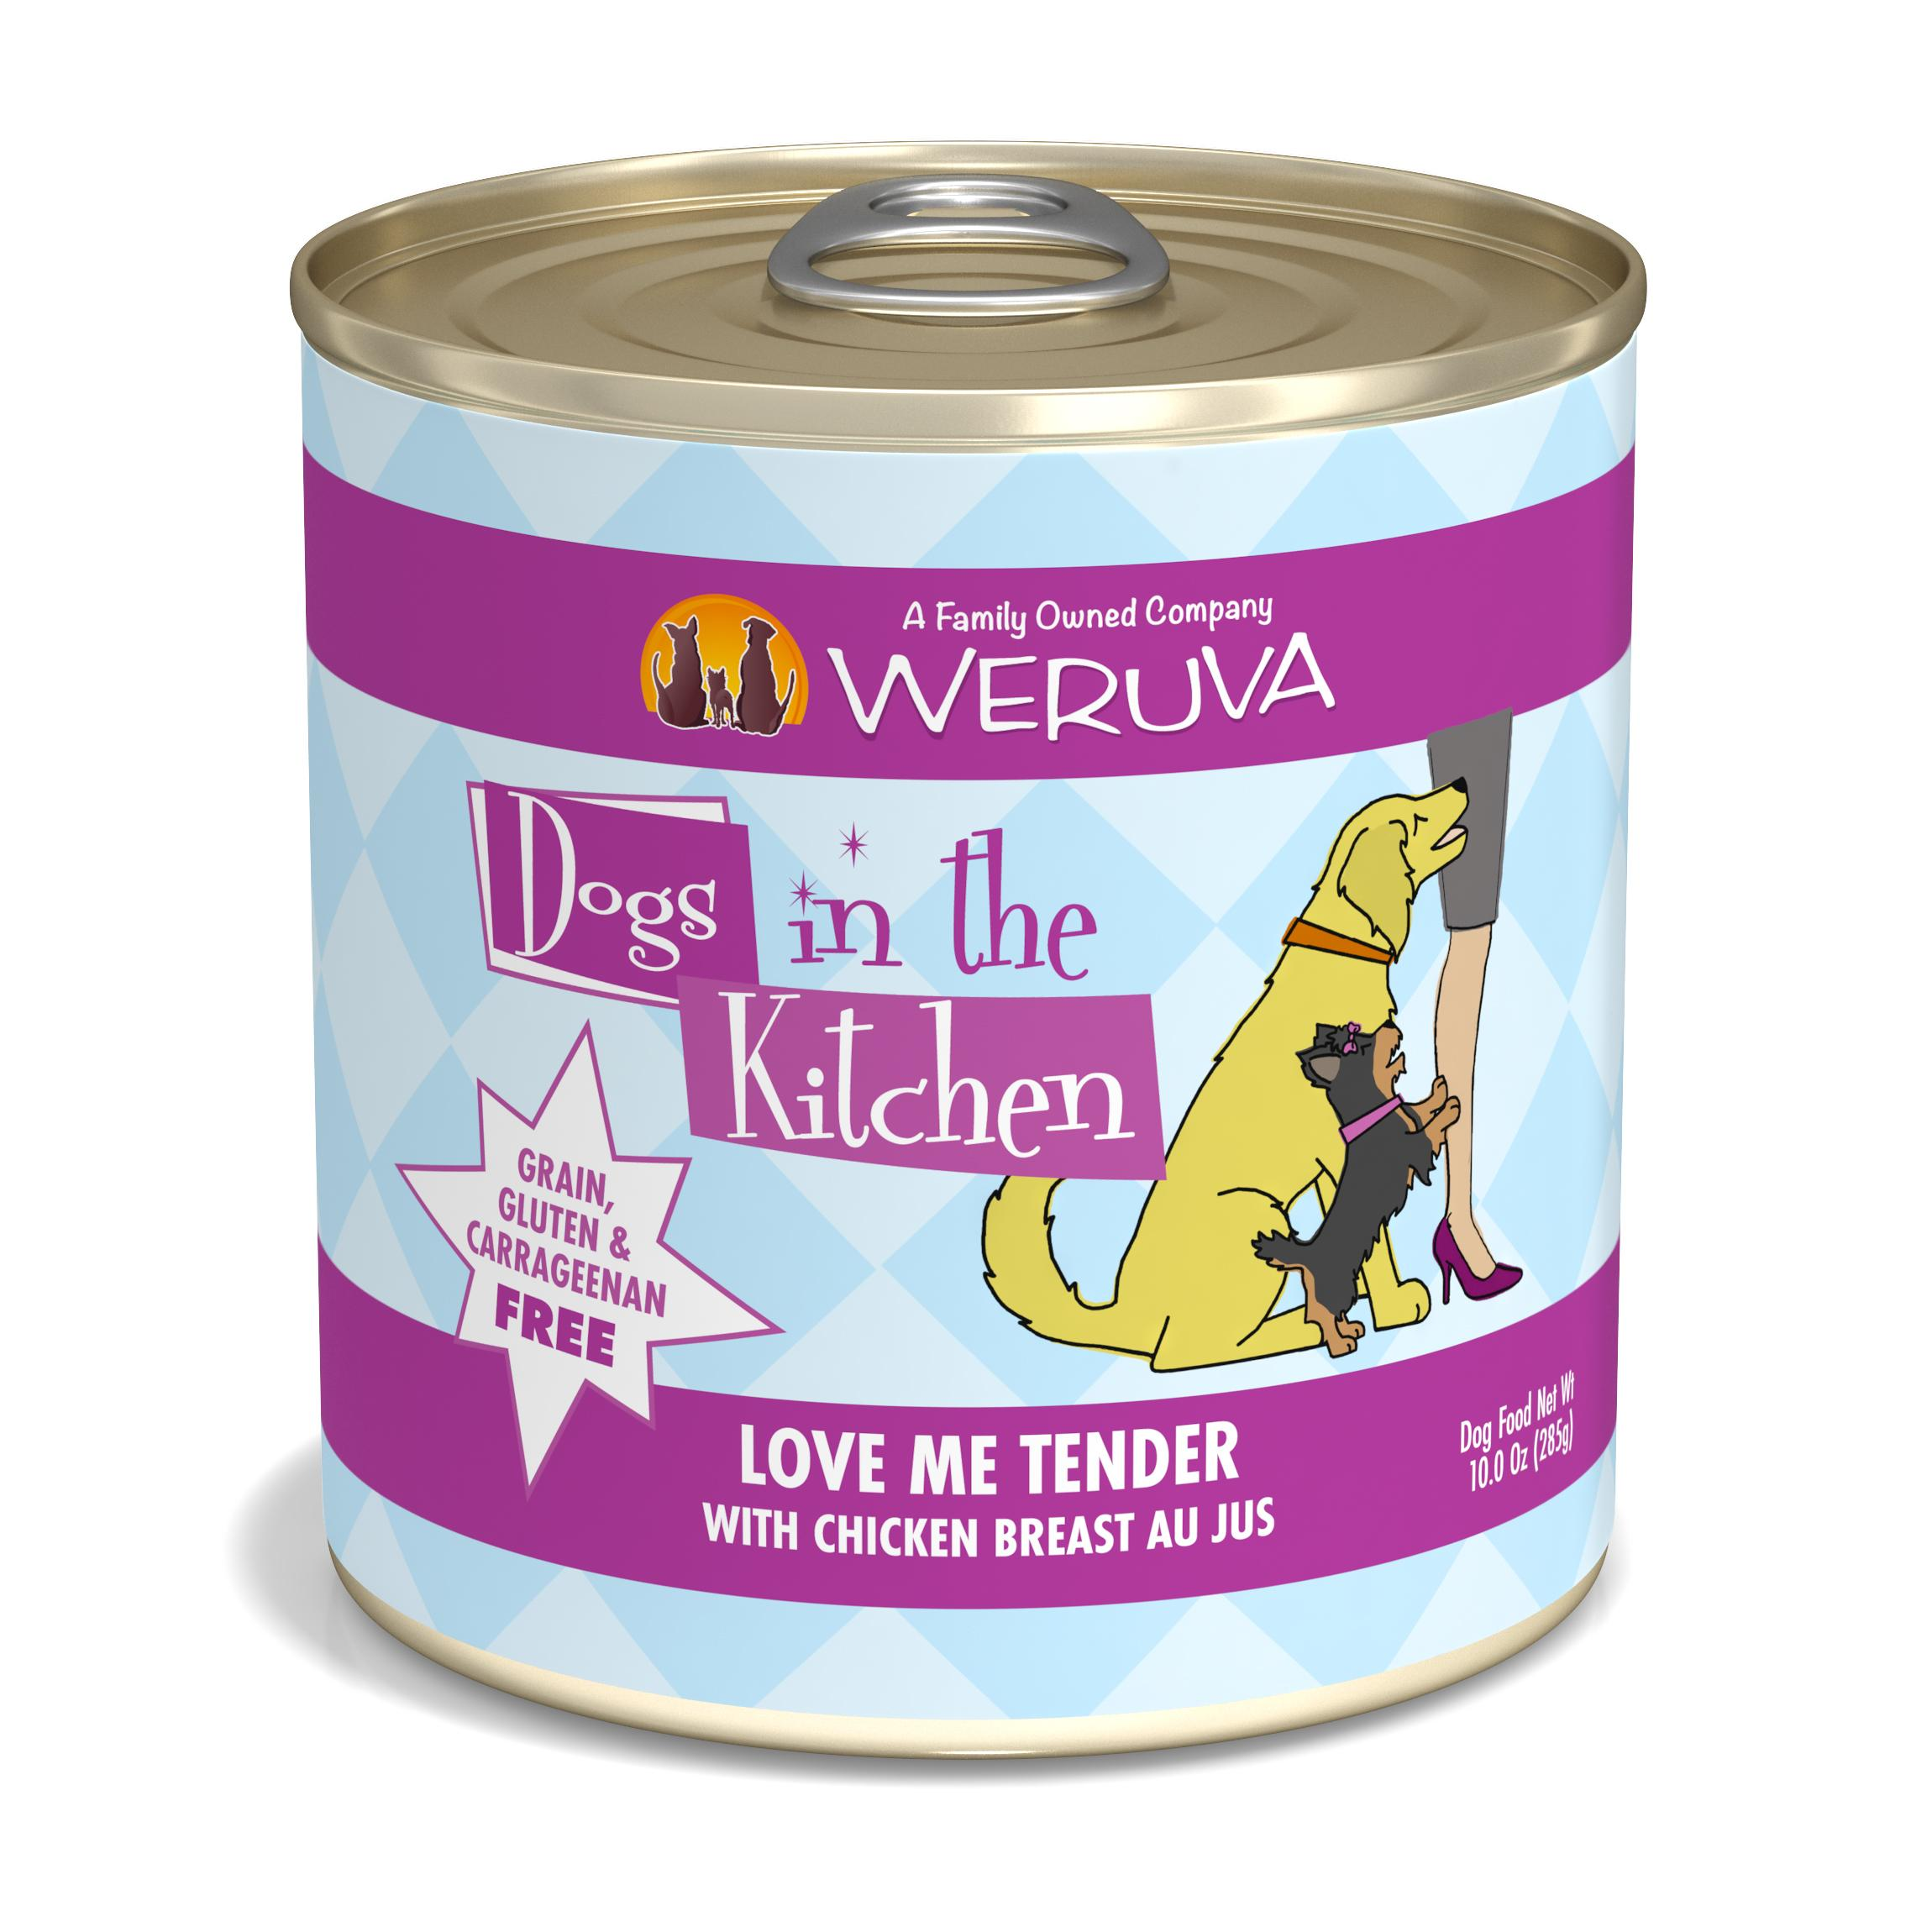 Weruva Dogs in the Kitchen Love Me Tender with Chicken Breast Au Jus Grain-Free Wet Dog Food, 10-oz can